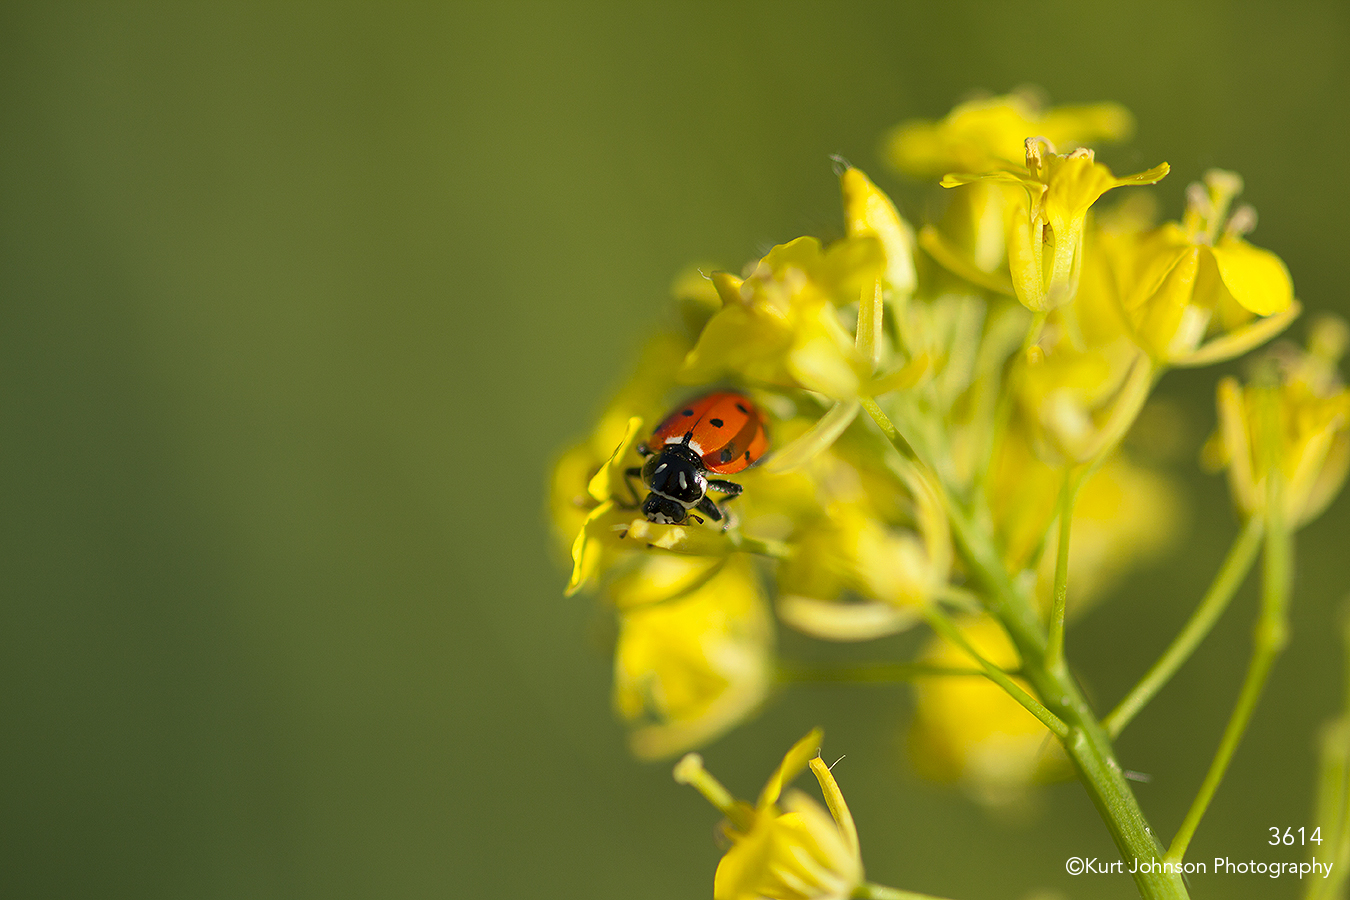 yellow flower ladybug green